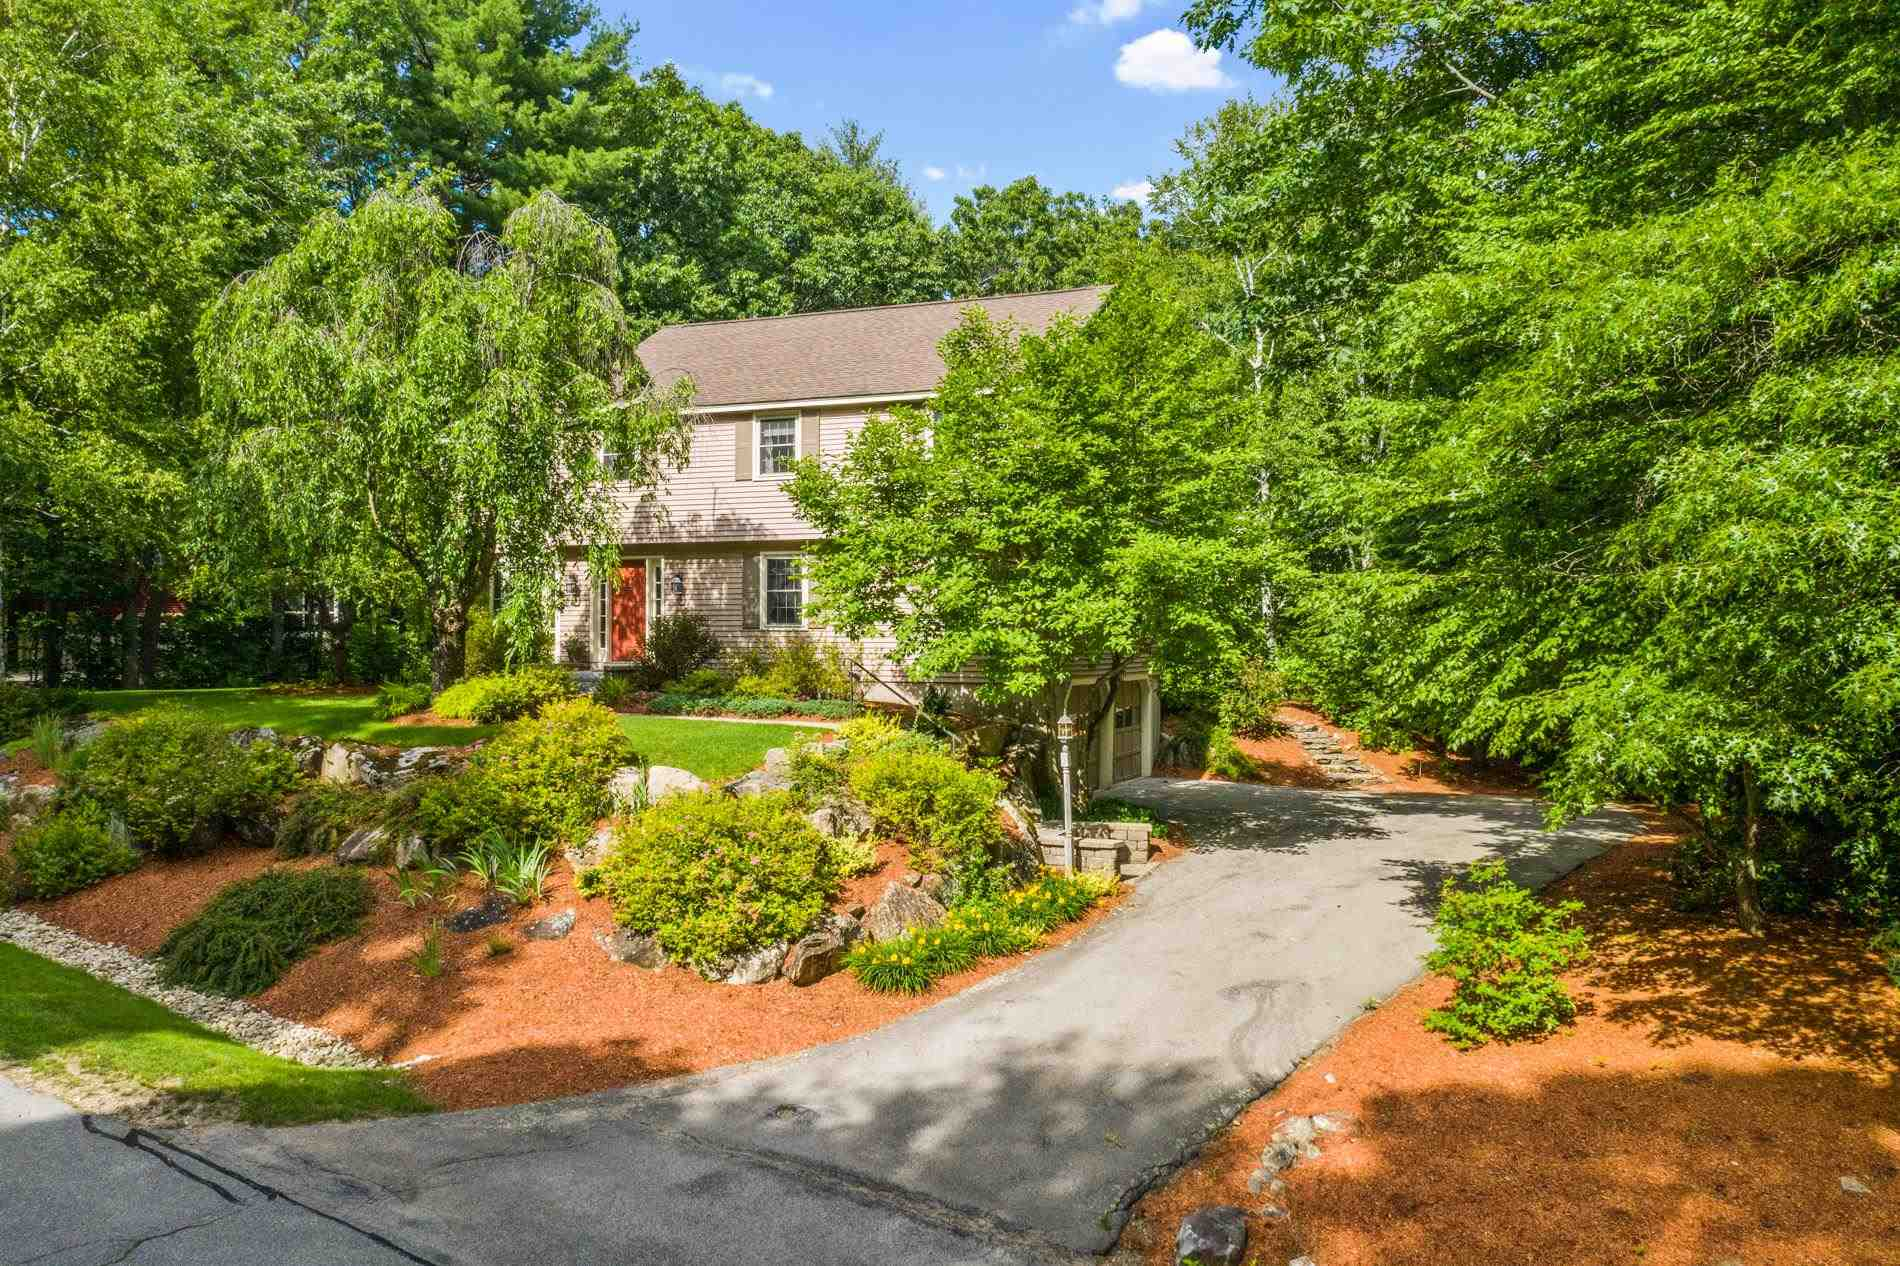 Photo of 5 Crestwood Court Amherst NH 03031